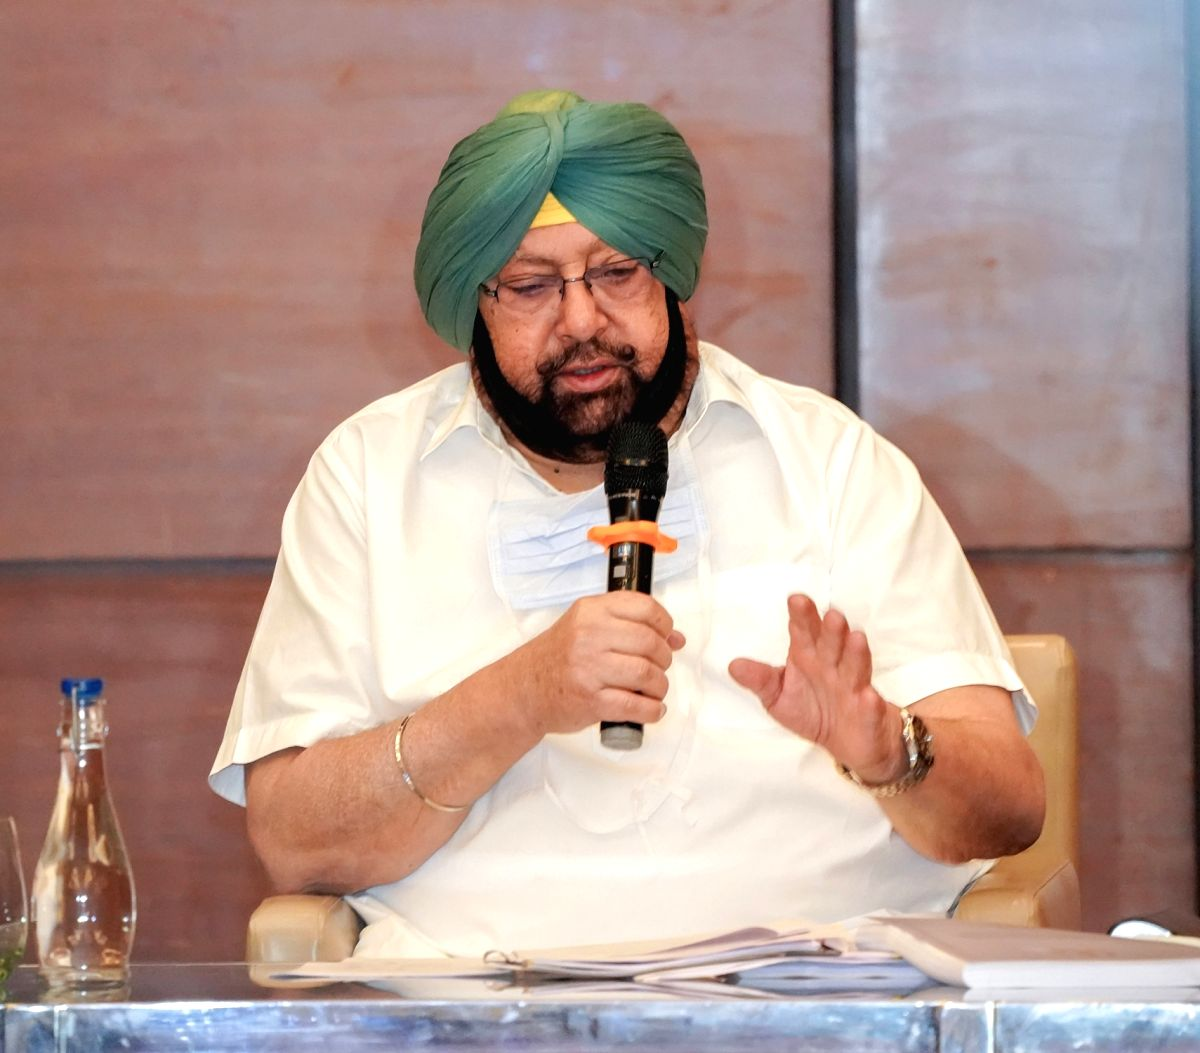 Chandigarh, July 6 (IANS) After Chief Minister Amarinder Singh ruled out relaxation in the 14-day home quarantine for domestic travellers, the process of e-registration for all those wishing to travel to the state has been made mandatory from Monday